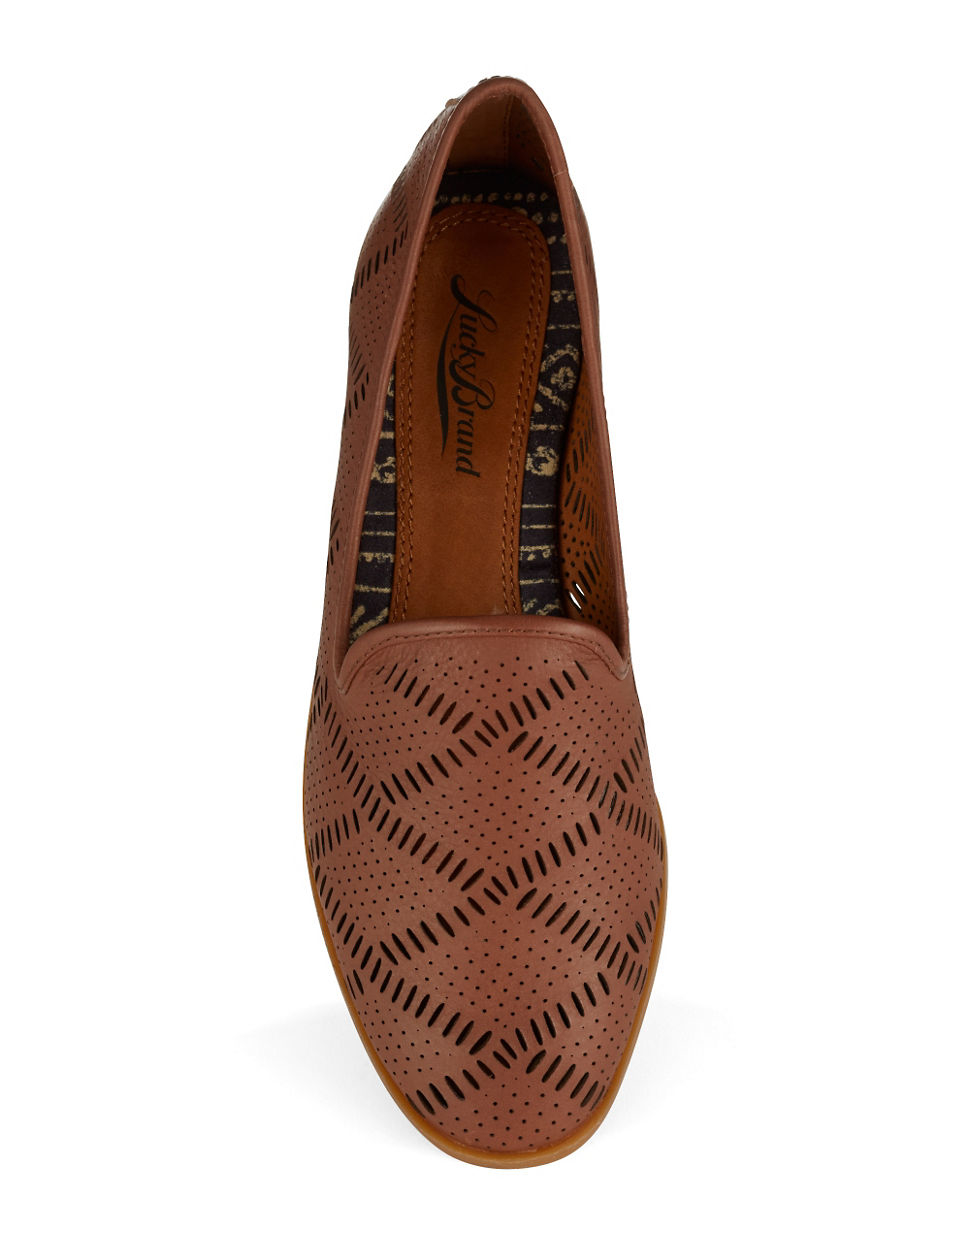 You'll find new or used products in Vintage Slippers for Men on eBay. Free shipping on selected items. Skip to main content. eBay: 9 M NOS Mens Vtg 70s SKAMPS Buckle Smoking Slipper Golden Brown Moccasin Shoe. $ NOS Mens Vtg 70s SKAMPS Buckle Smoking Slipper Mocs GOLD Brown Slip-On Shoe.